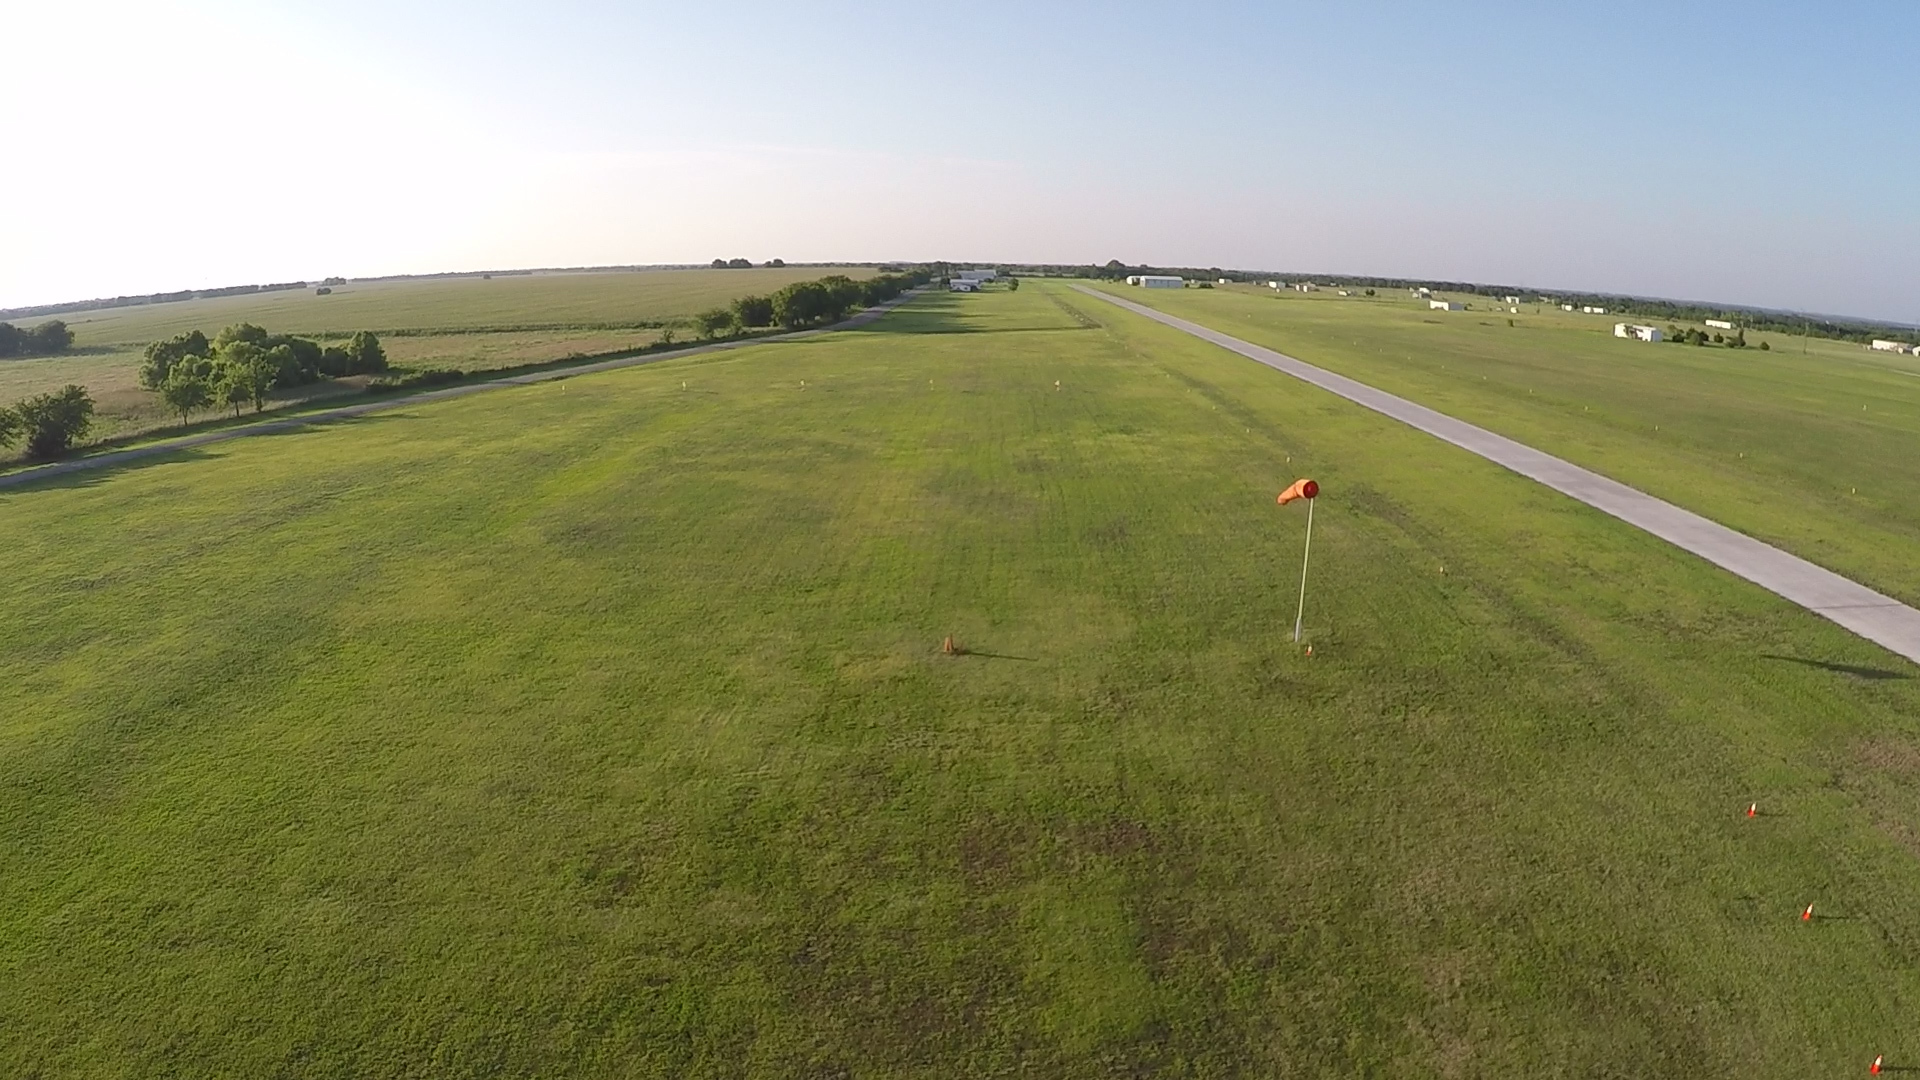 Next to the D license landing area is the B/C license area along the driveway.